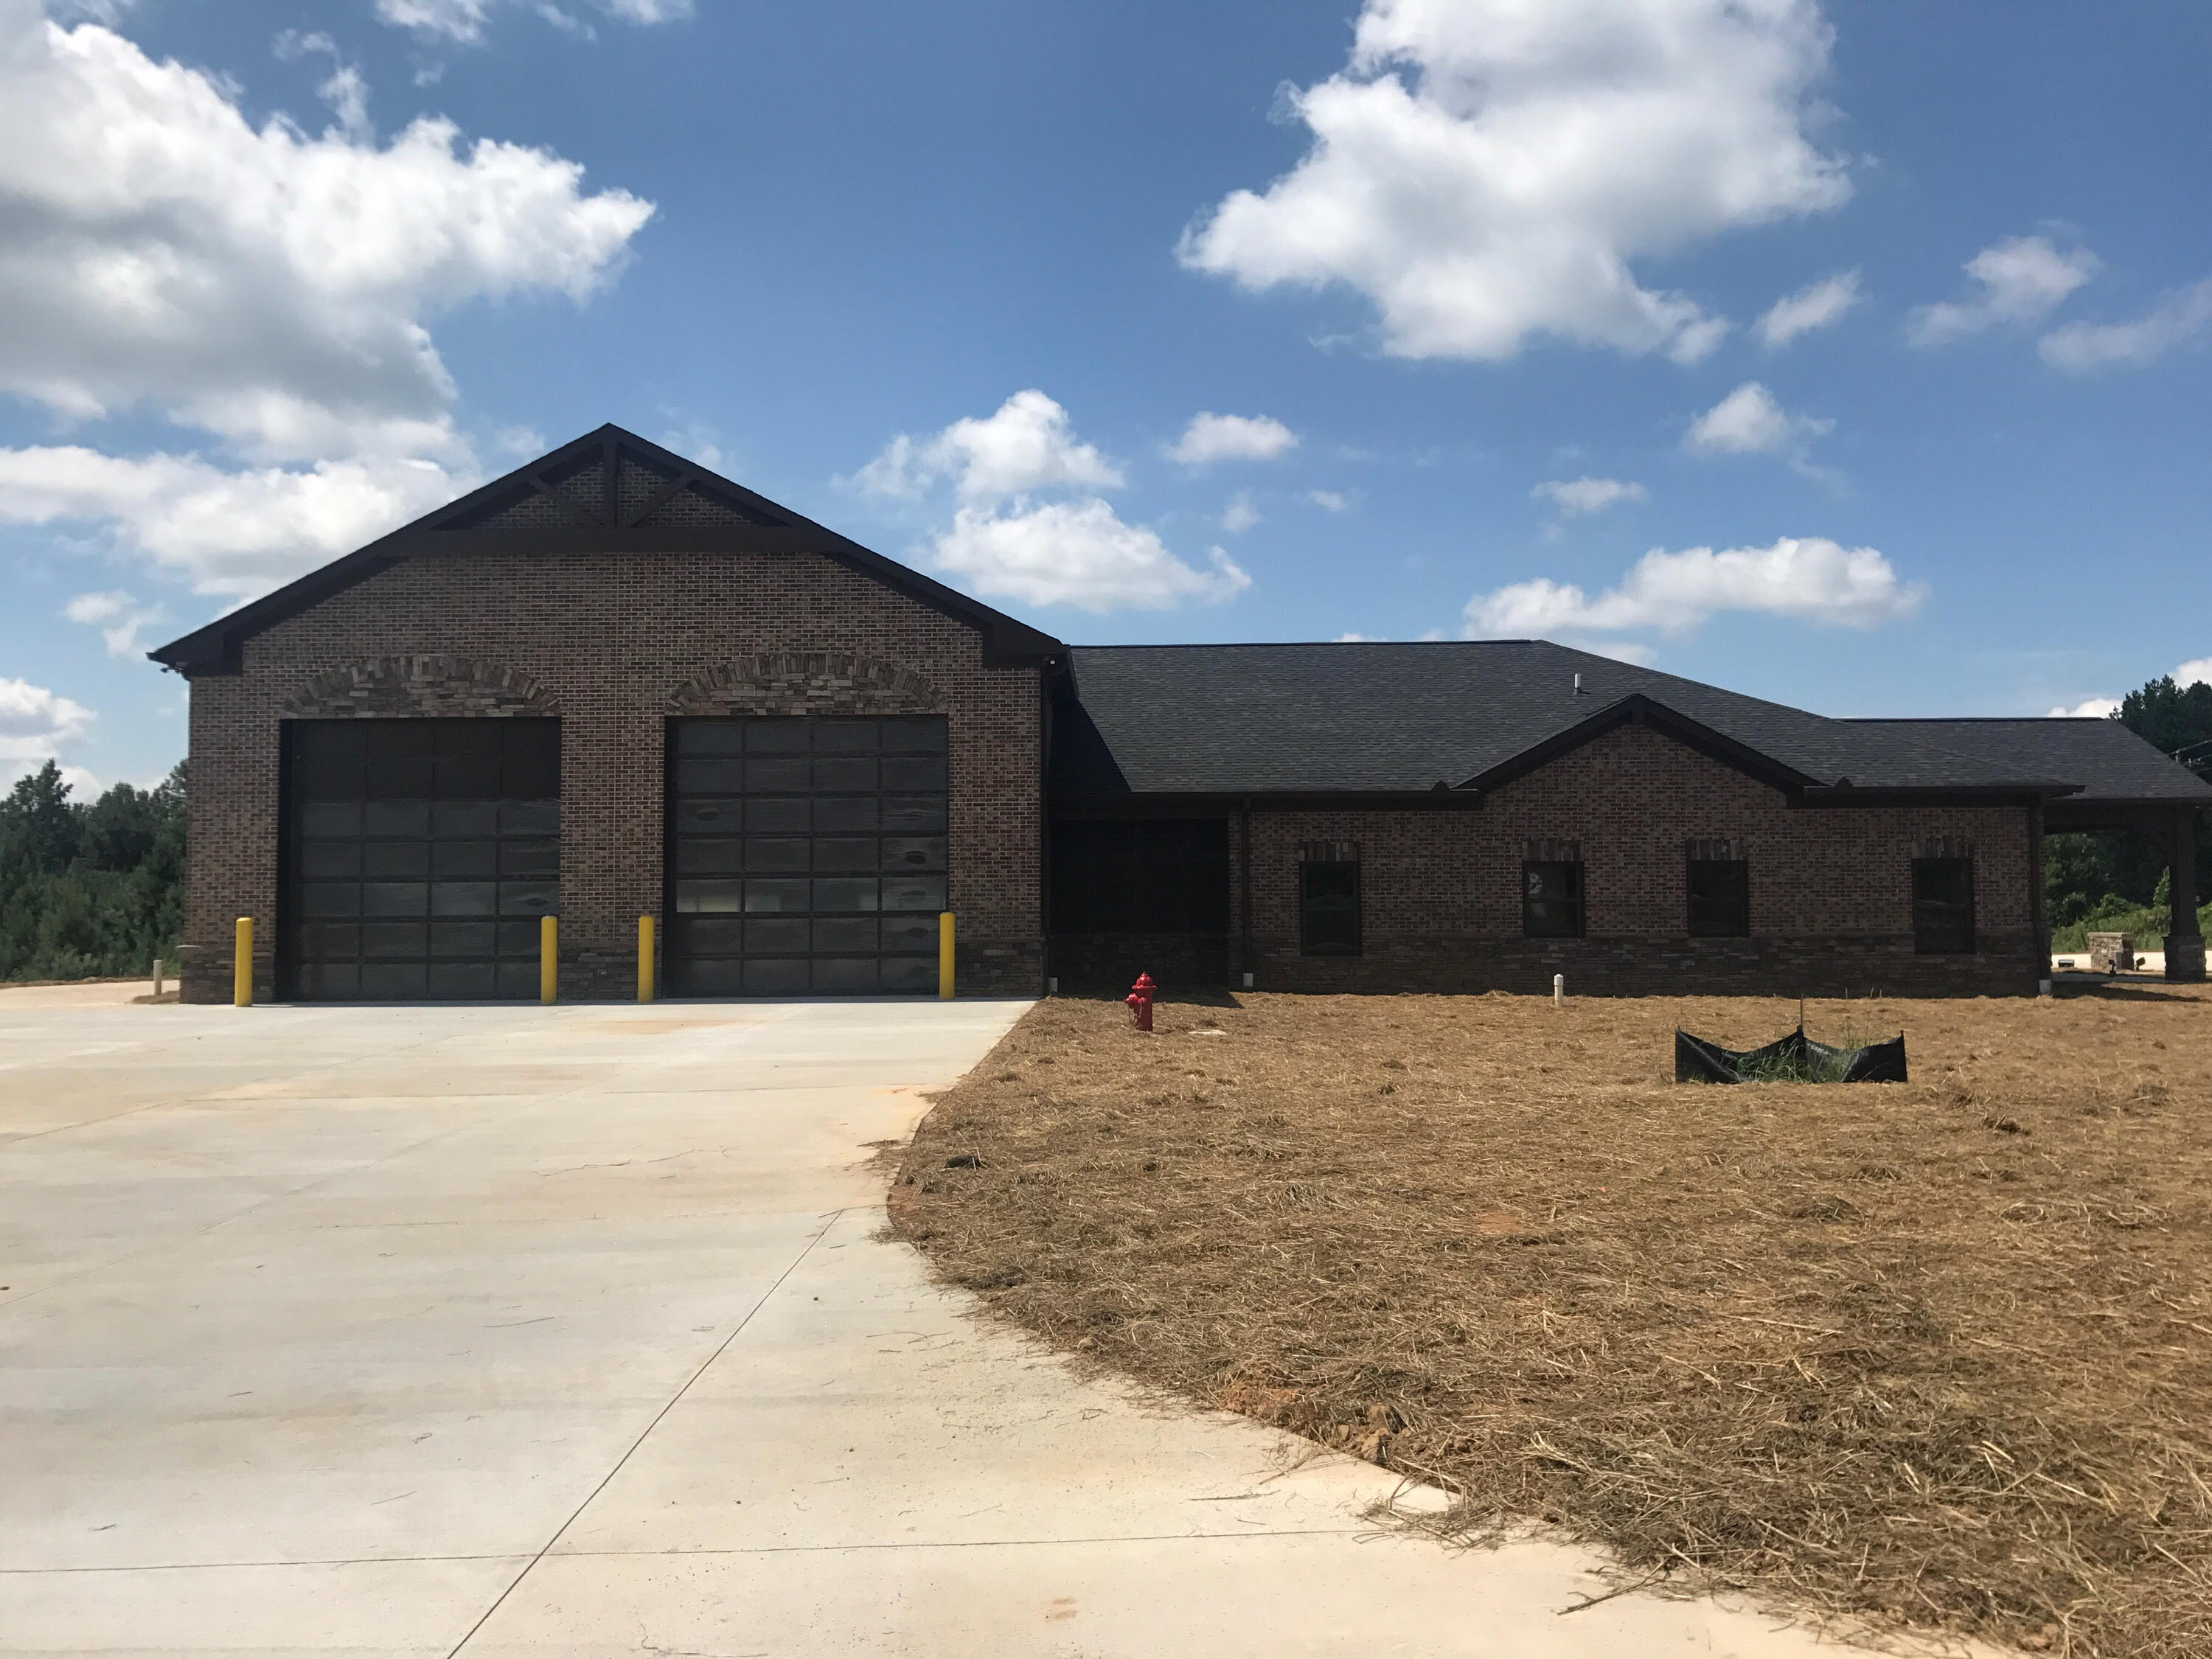 Carroll County Fire Department Announces Improved ISO Rating